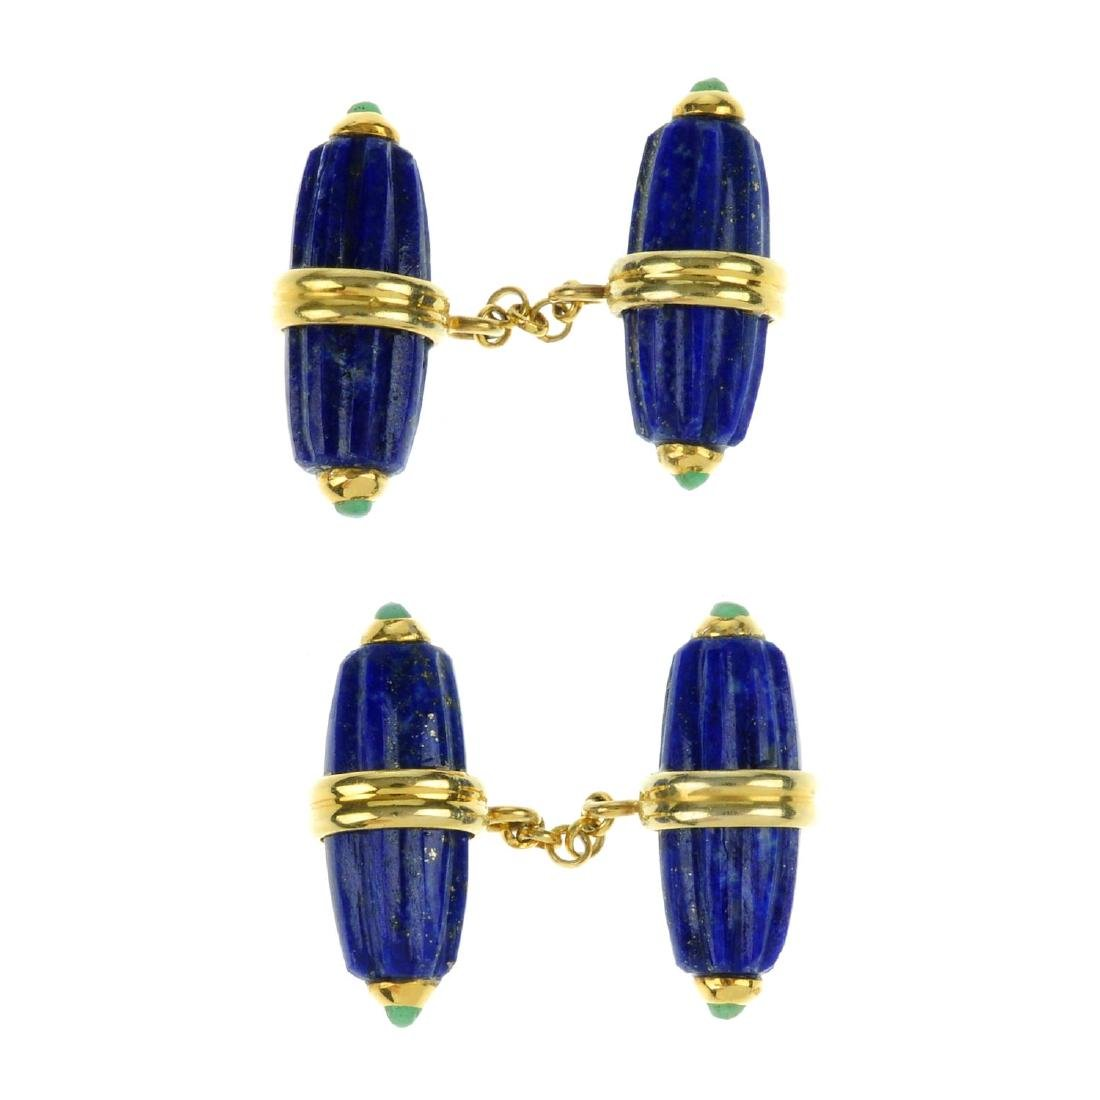 A pair of lapis lazuli and emerald cufflinks. Designed